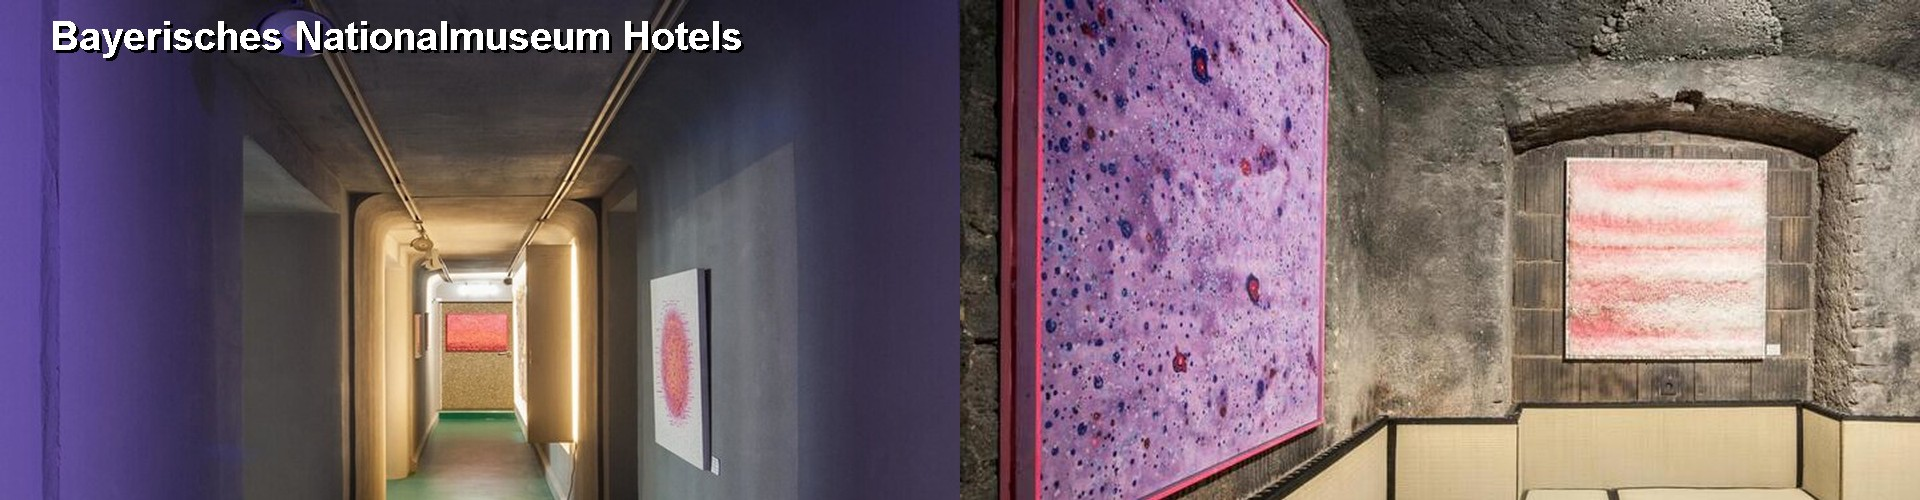 5 Best Hotels near Bayerisches Nationalmuseum